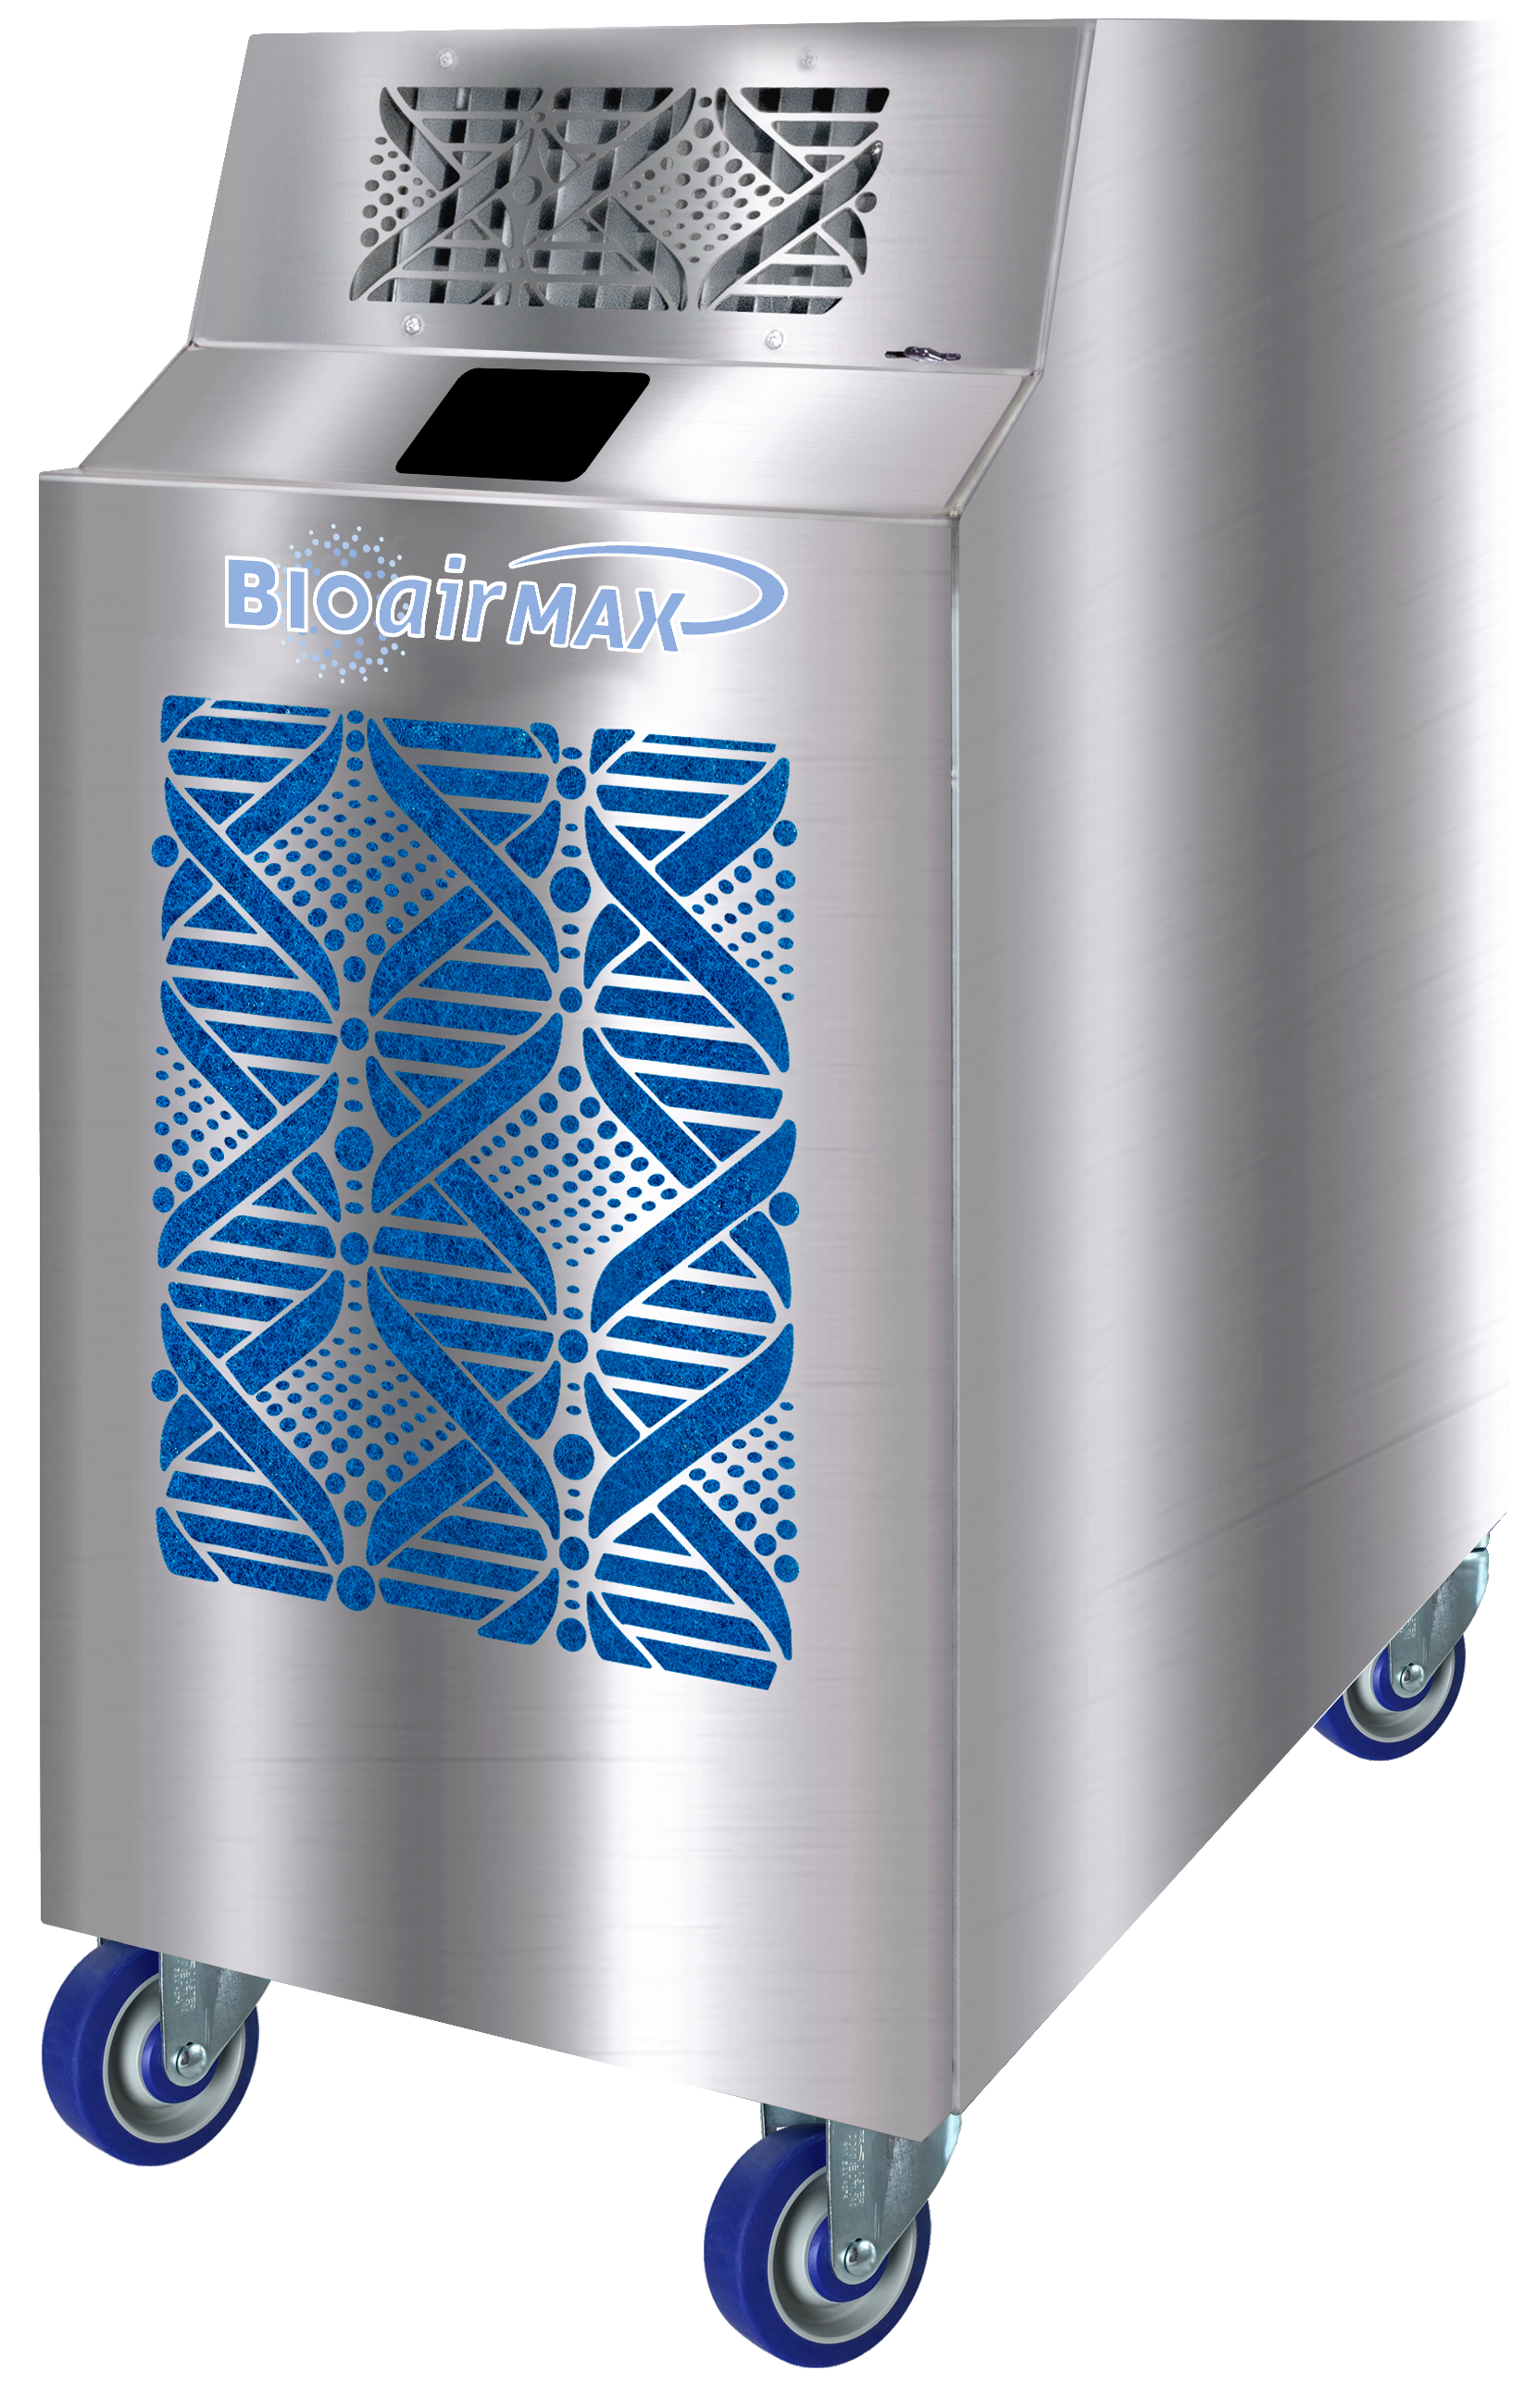 Kwikool KBX1800 BioAir Max Series Combination Air Scrubber / Negative Air Machine with HEPA Filtration, UV Protection and Ionizer